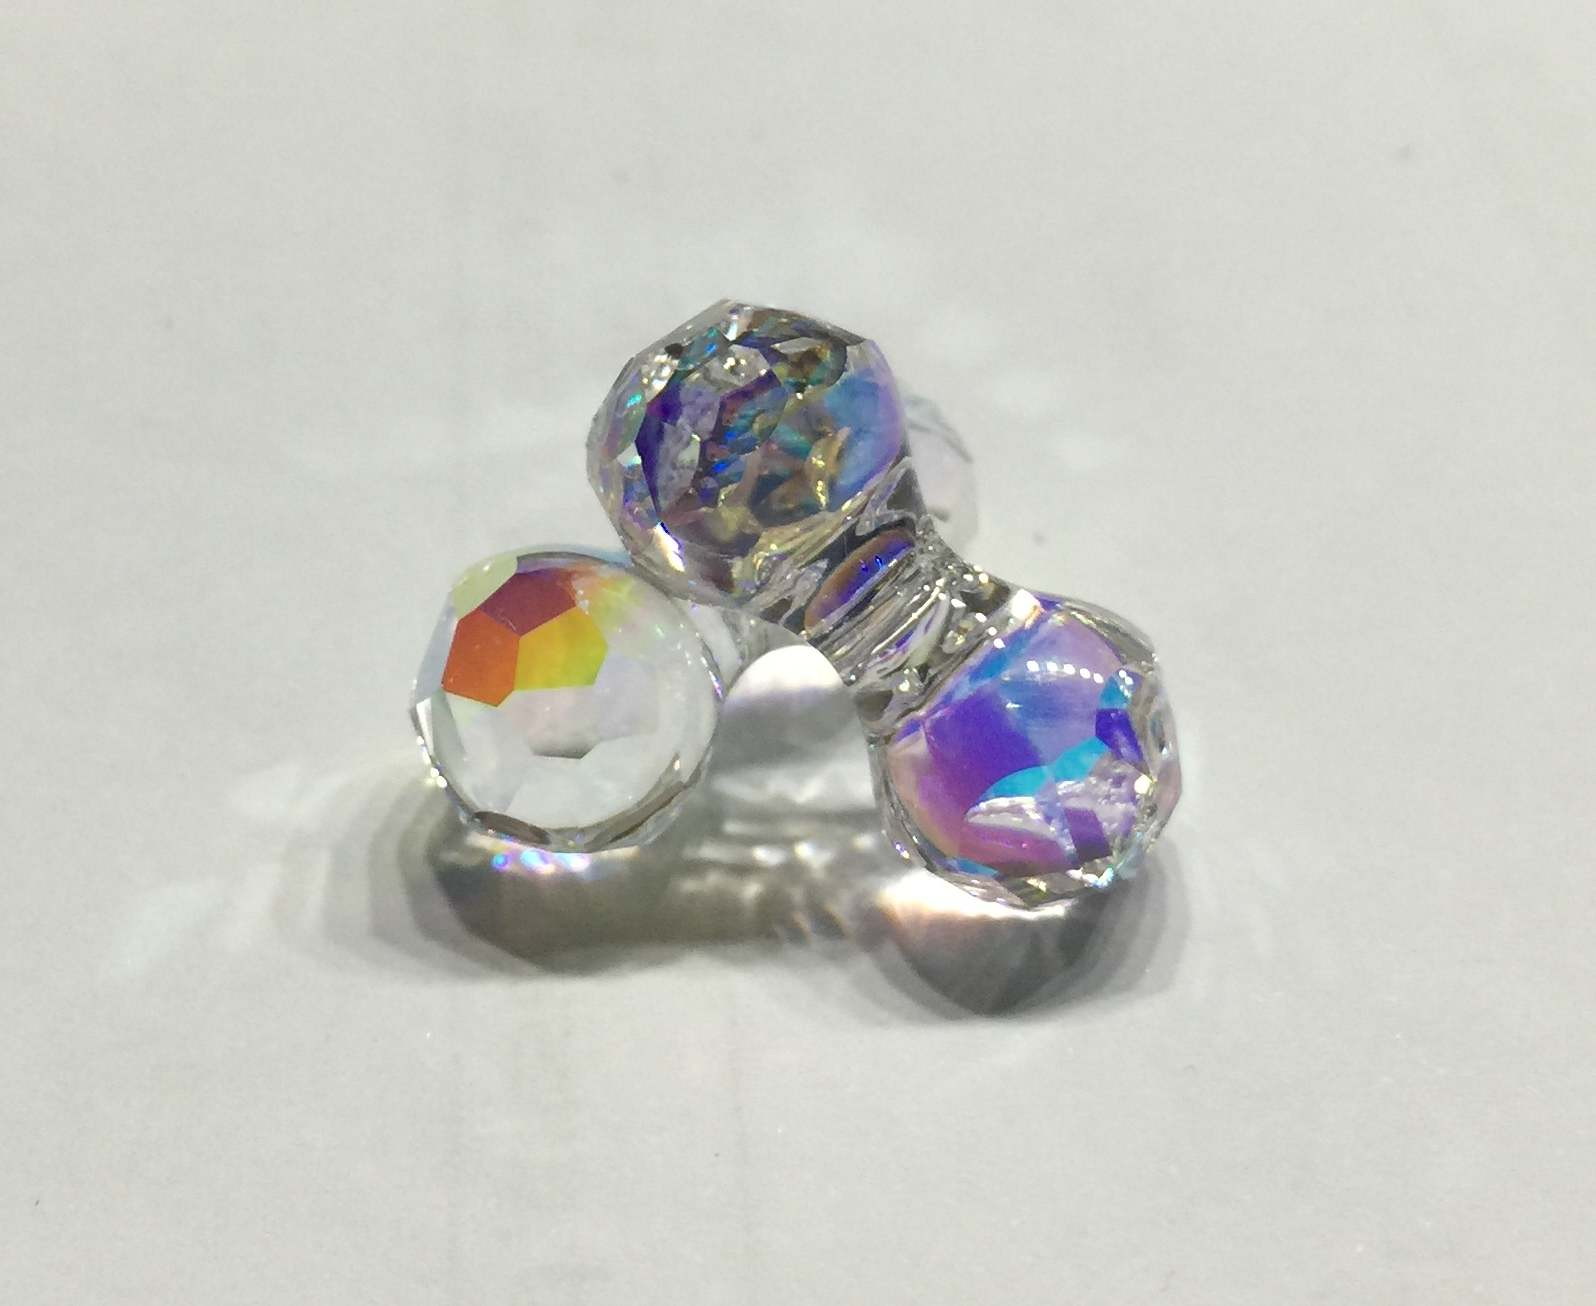 5150 - Modular Bead Crystal AB (001) - 23x11mm (L)